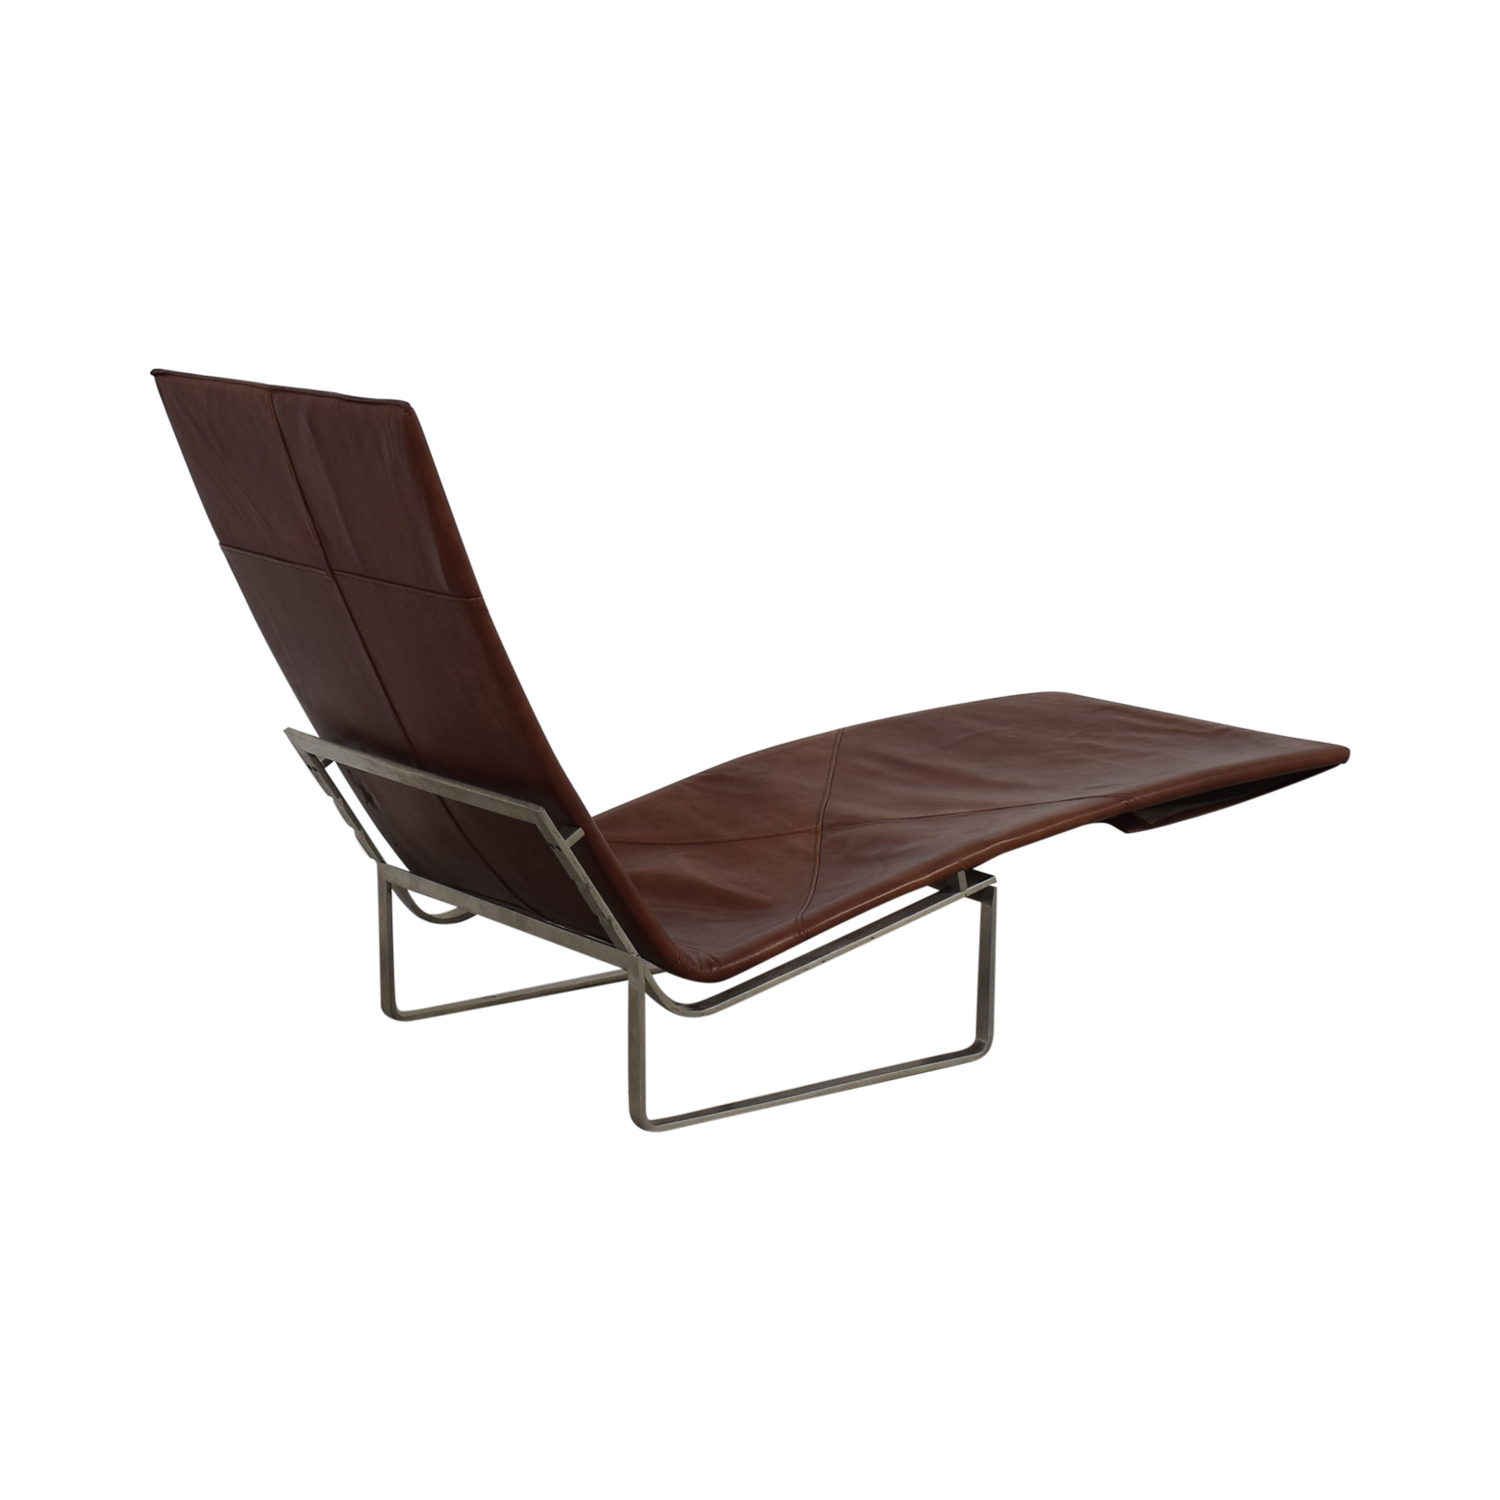 Kardiel Kardiel PK24 Lounge Chair Brown/Bronze